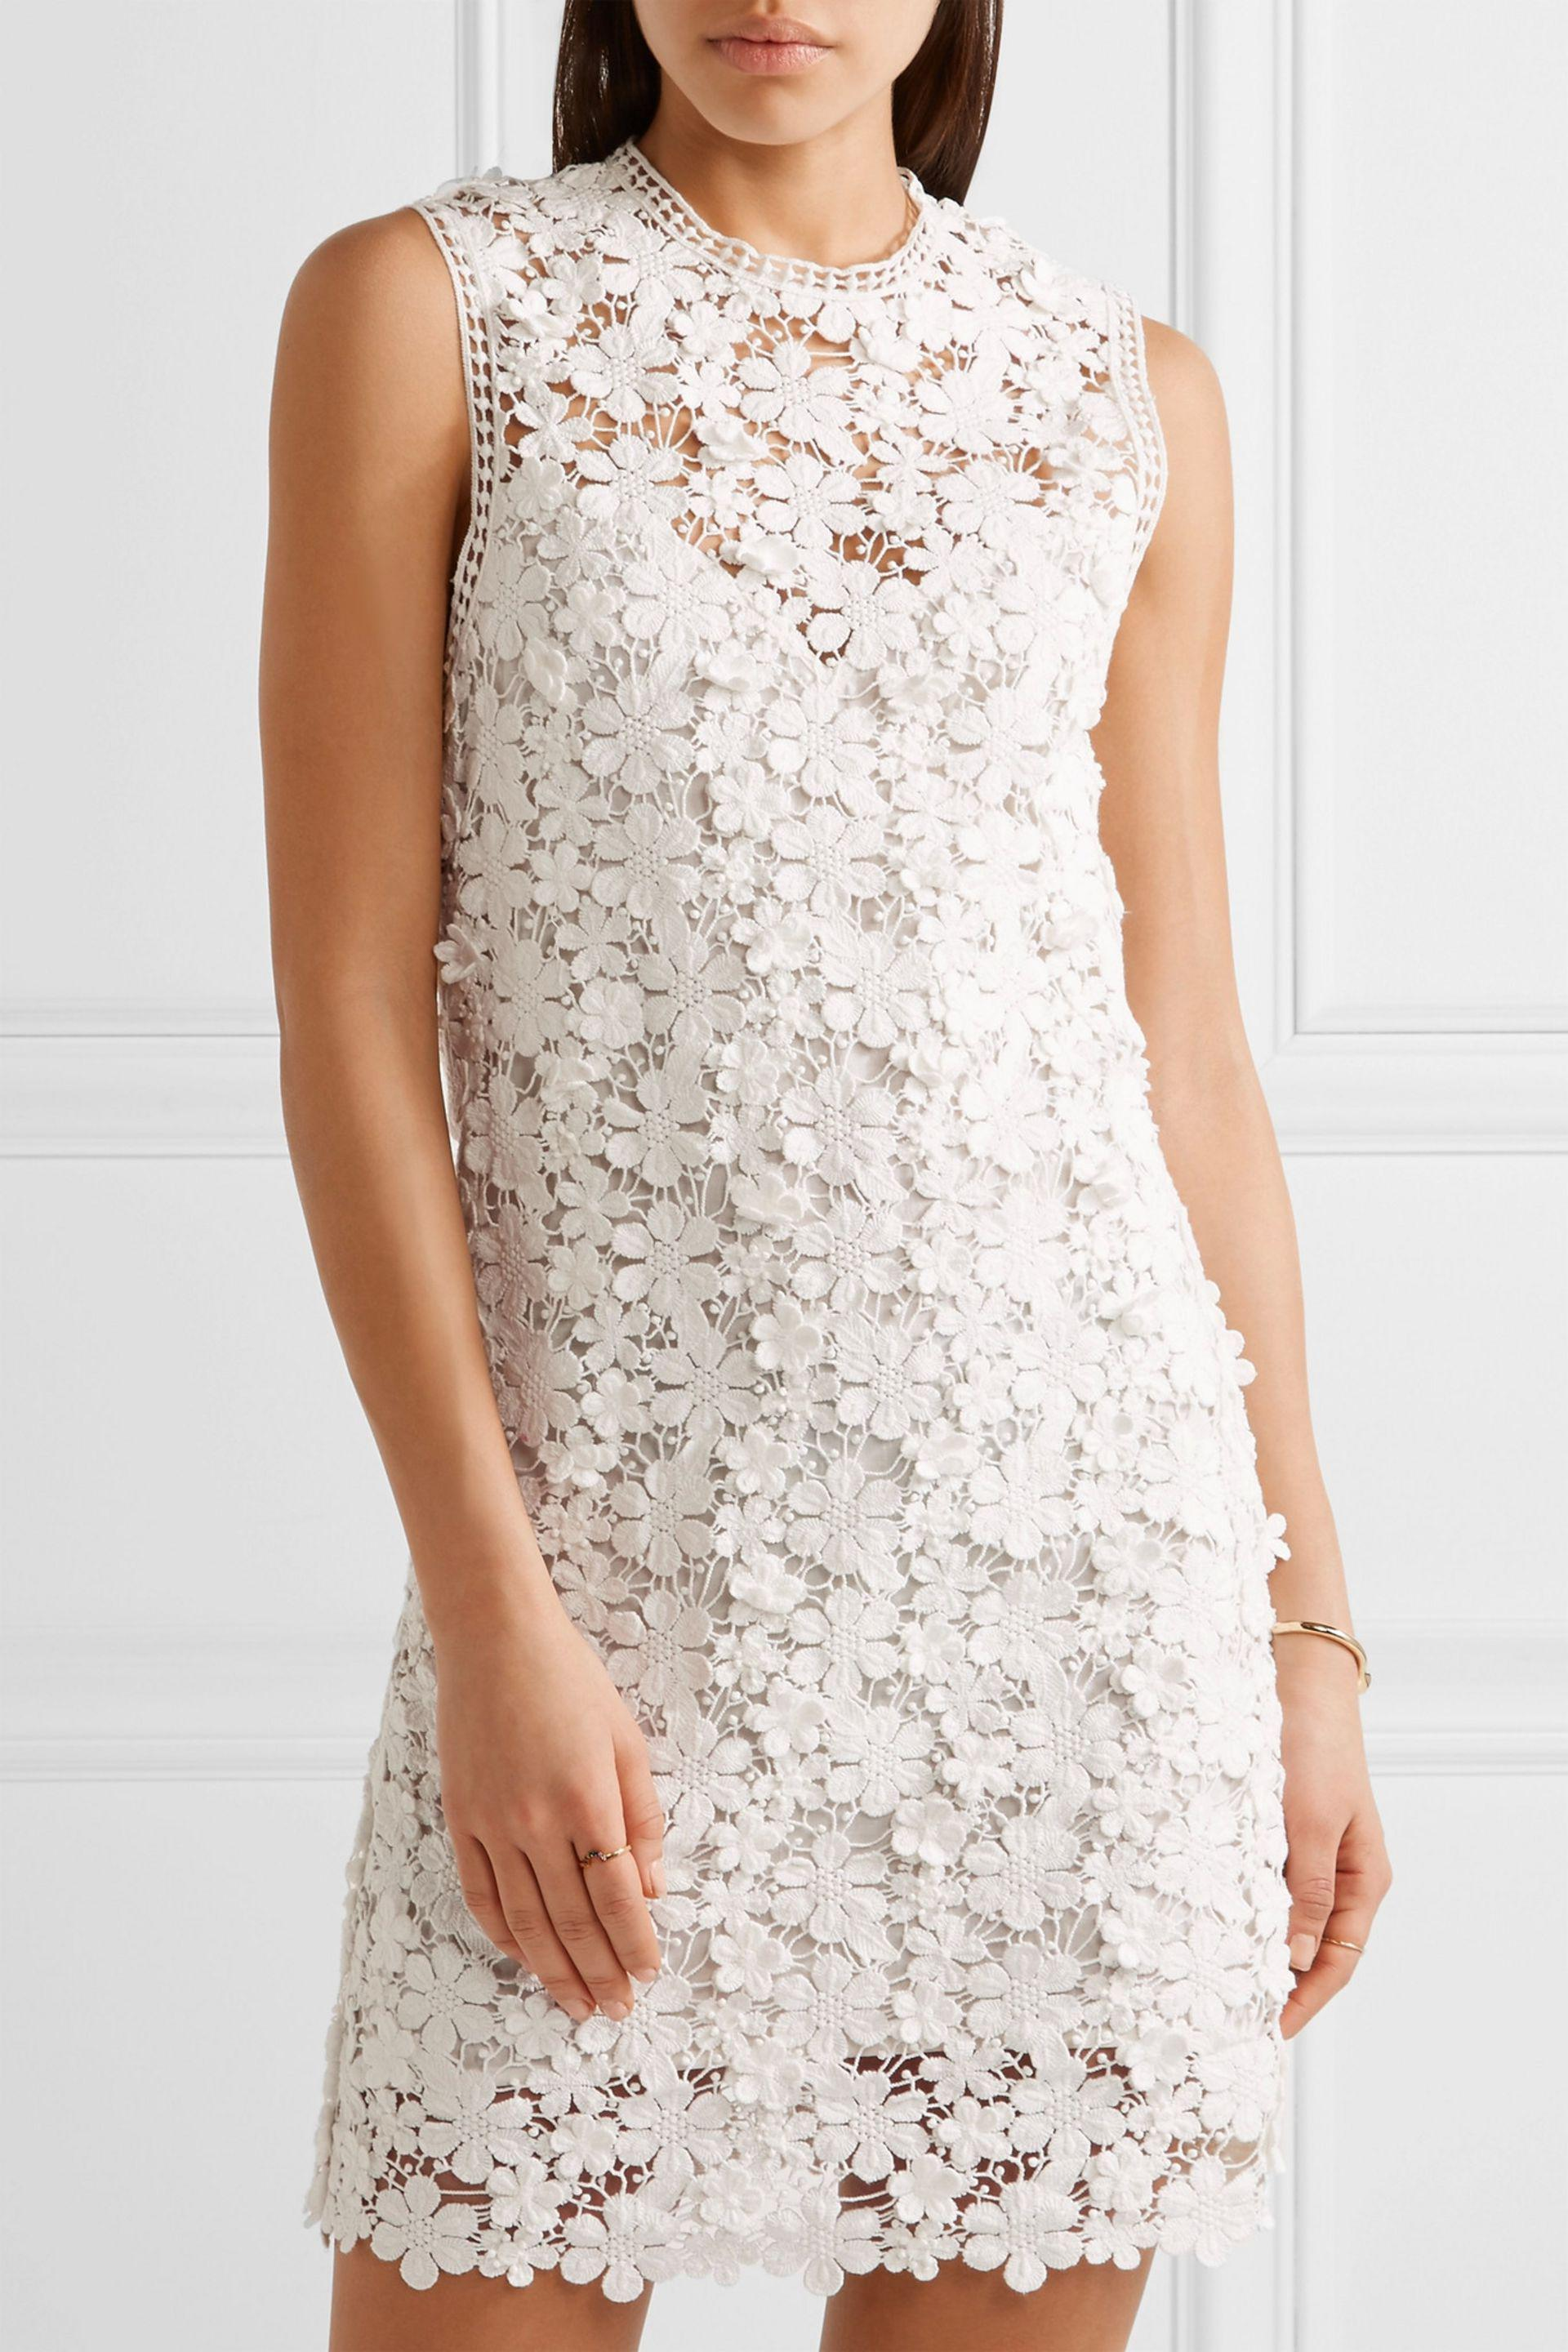 Lyst Sea Appliqu 233 D Guipure Cotton Lace Mini Dress In White